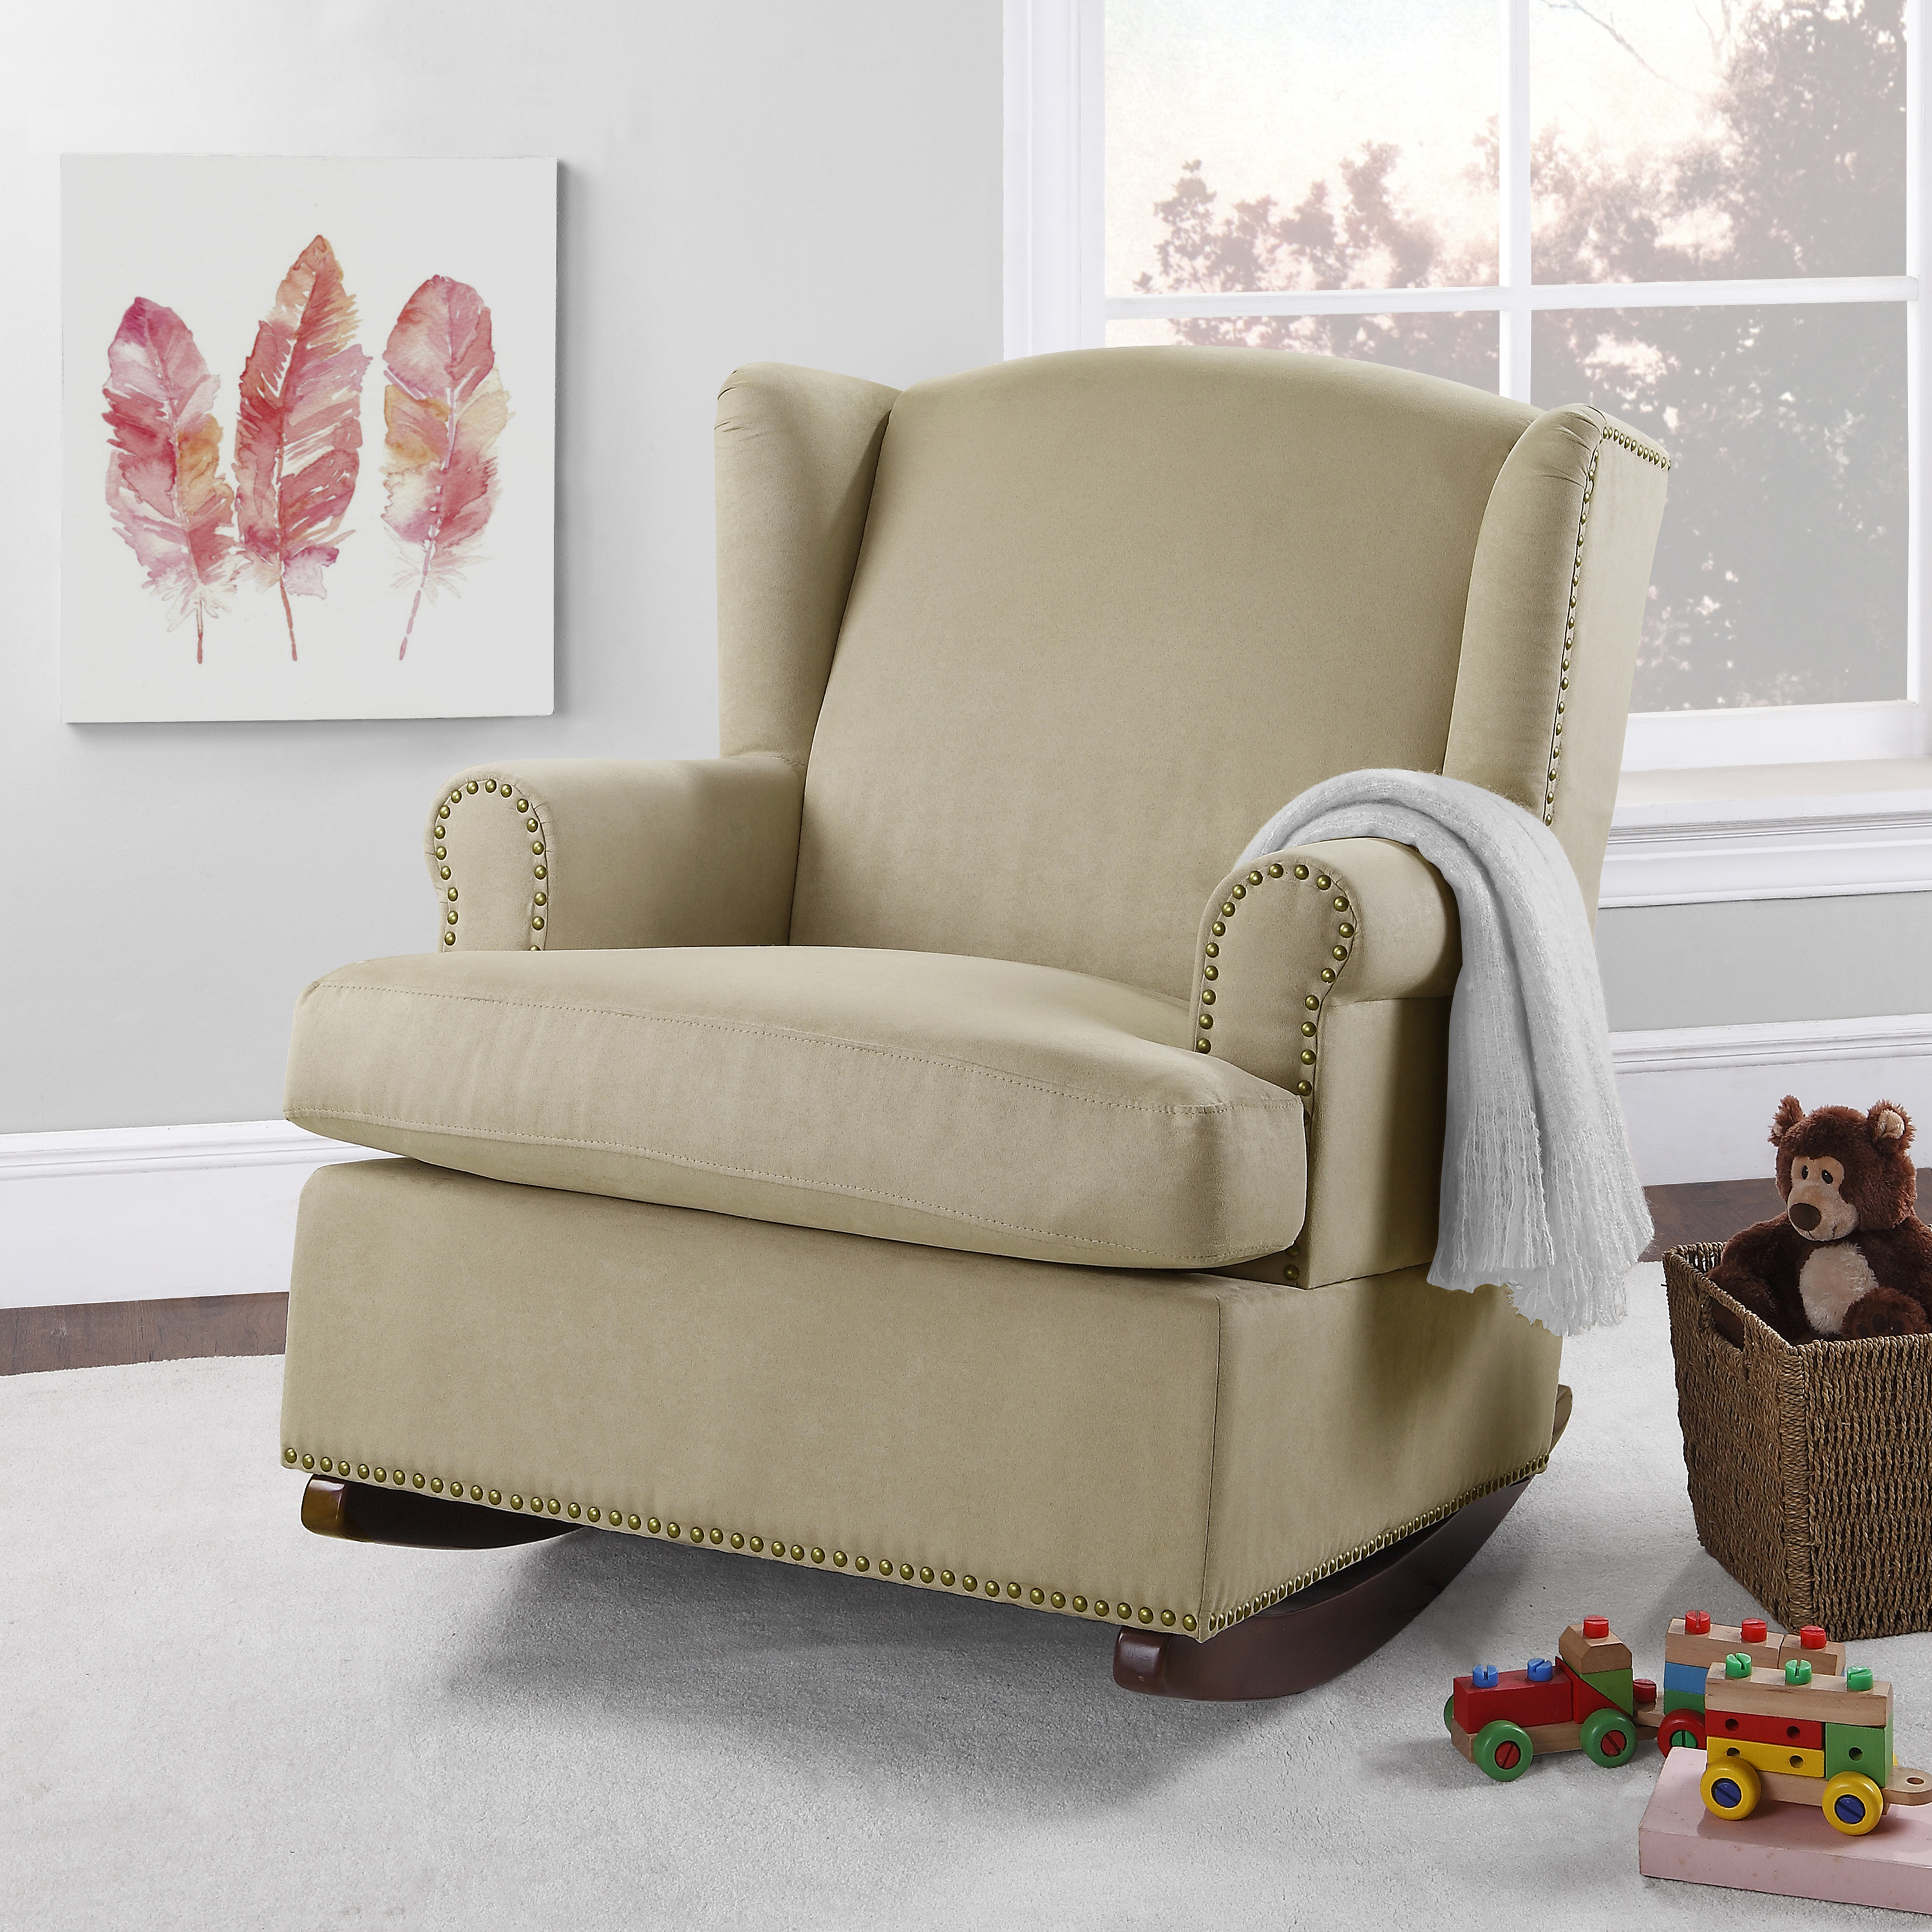 dorel rocking chair wooden stool philippines harlow wingback rocker with nailheads multiple colors